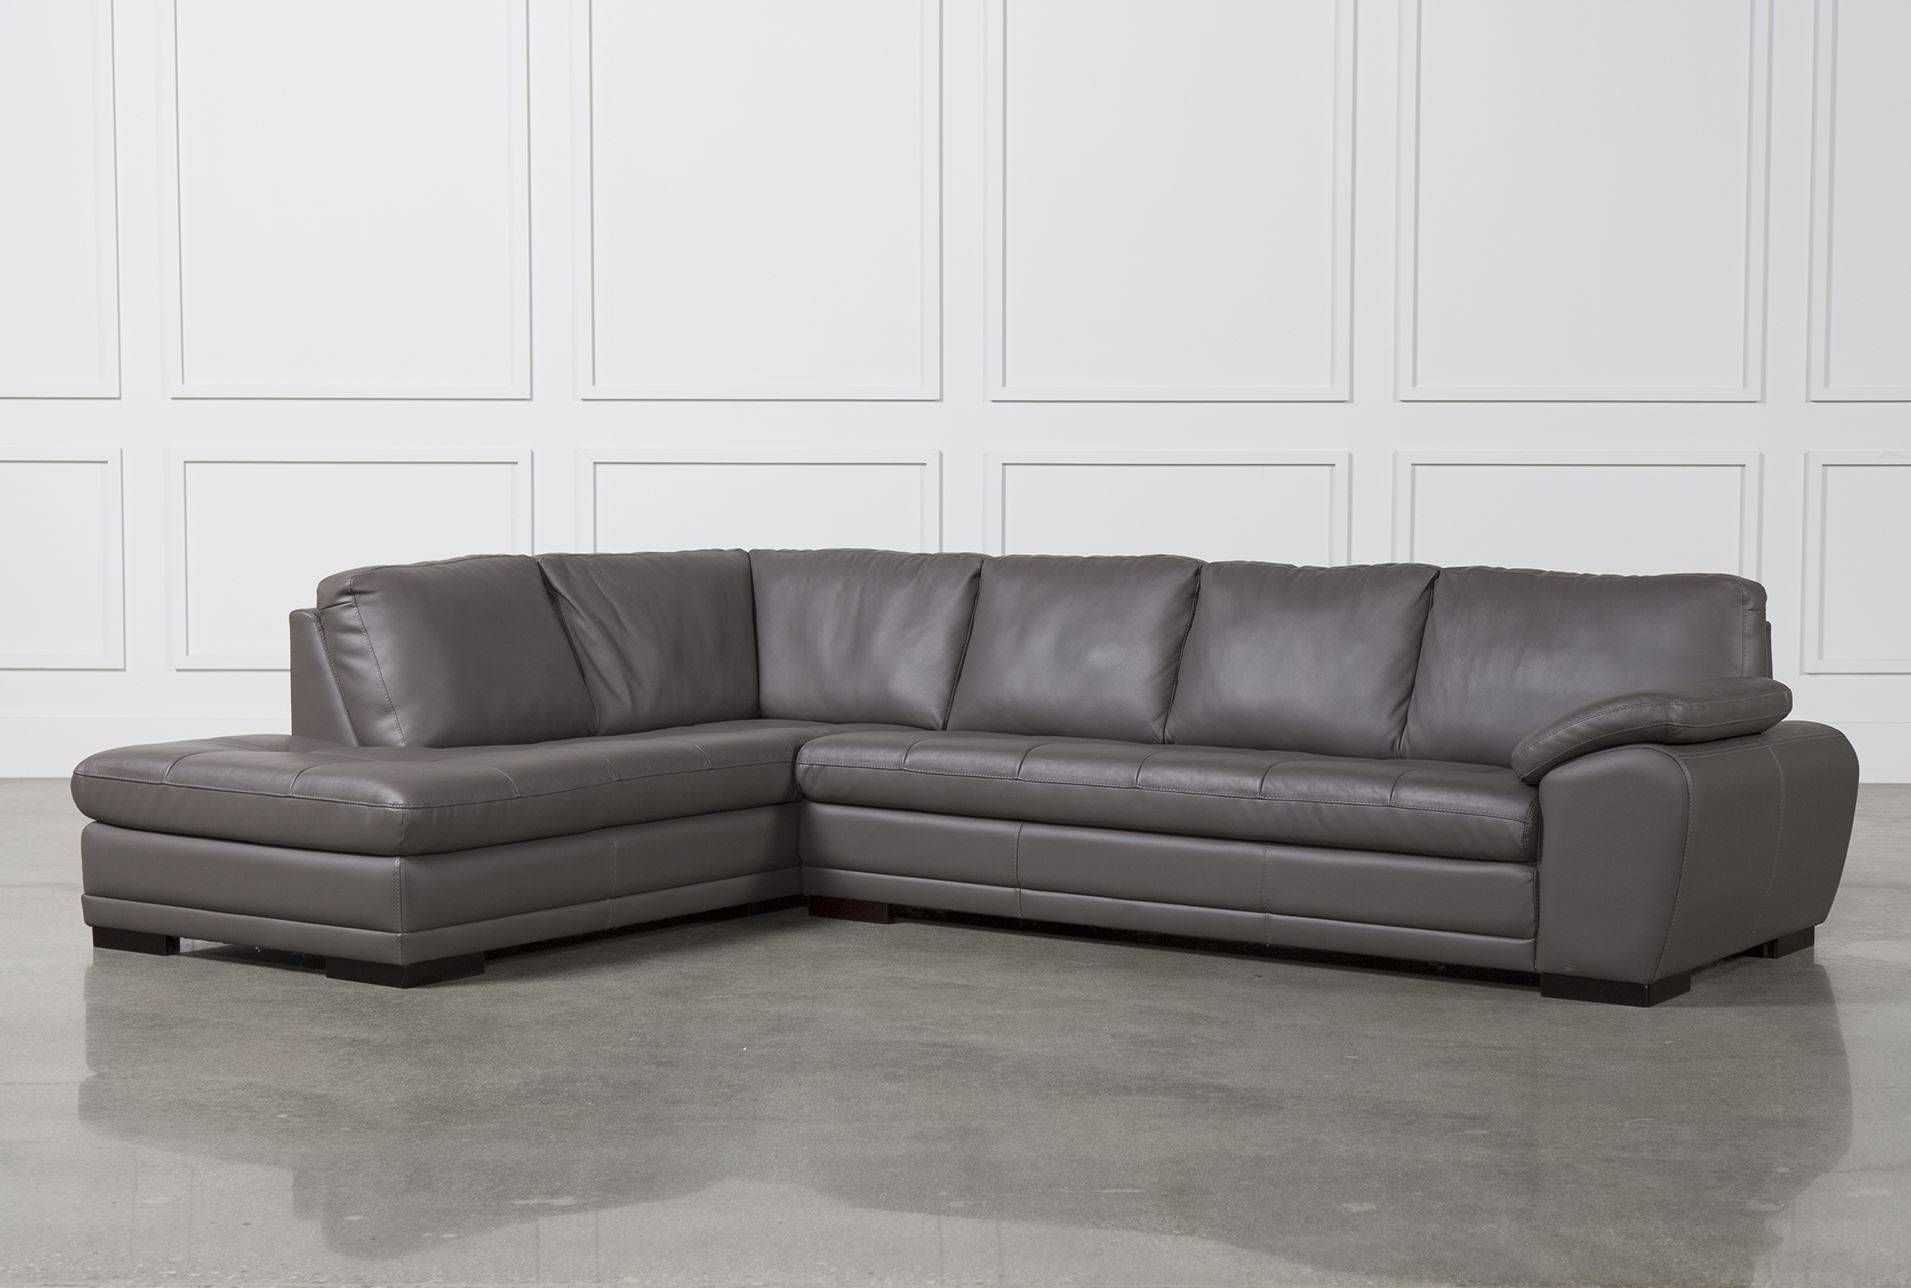 Furniture: Small Sectional Sofas For Small Spaces | Craigslist regarding Craigslist Sectional Sofa (Image 14 of 30)